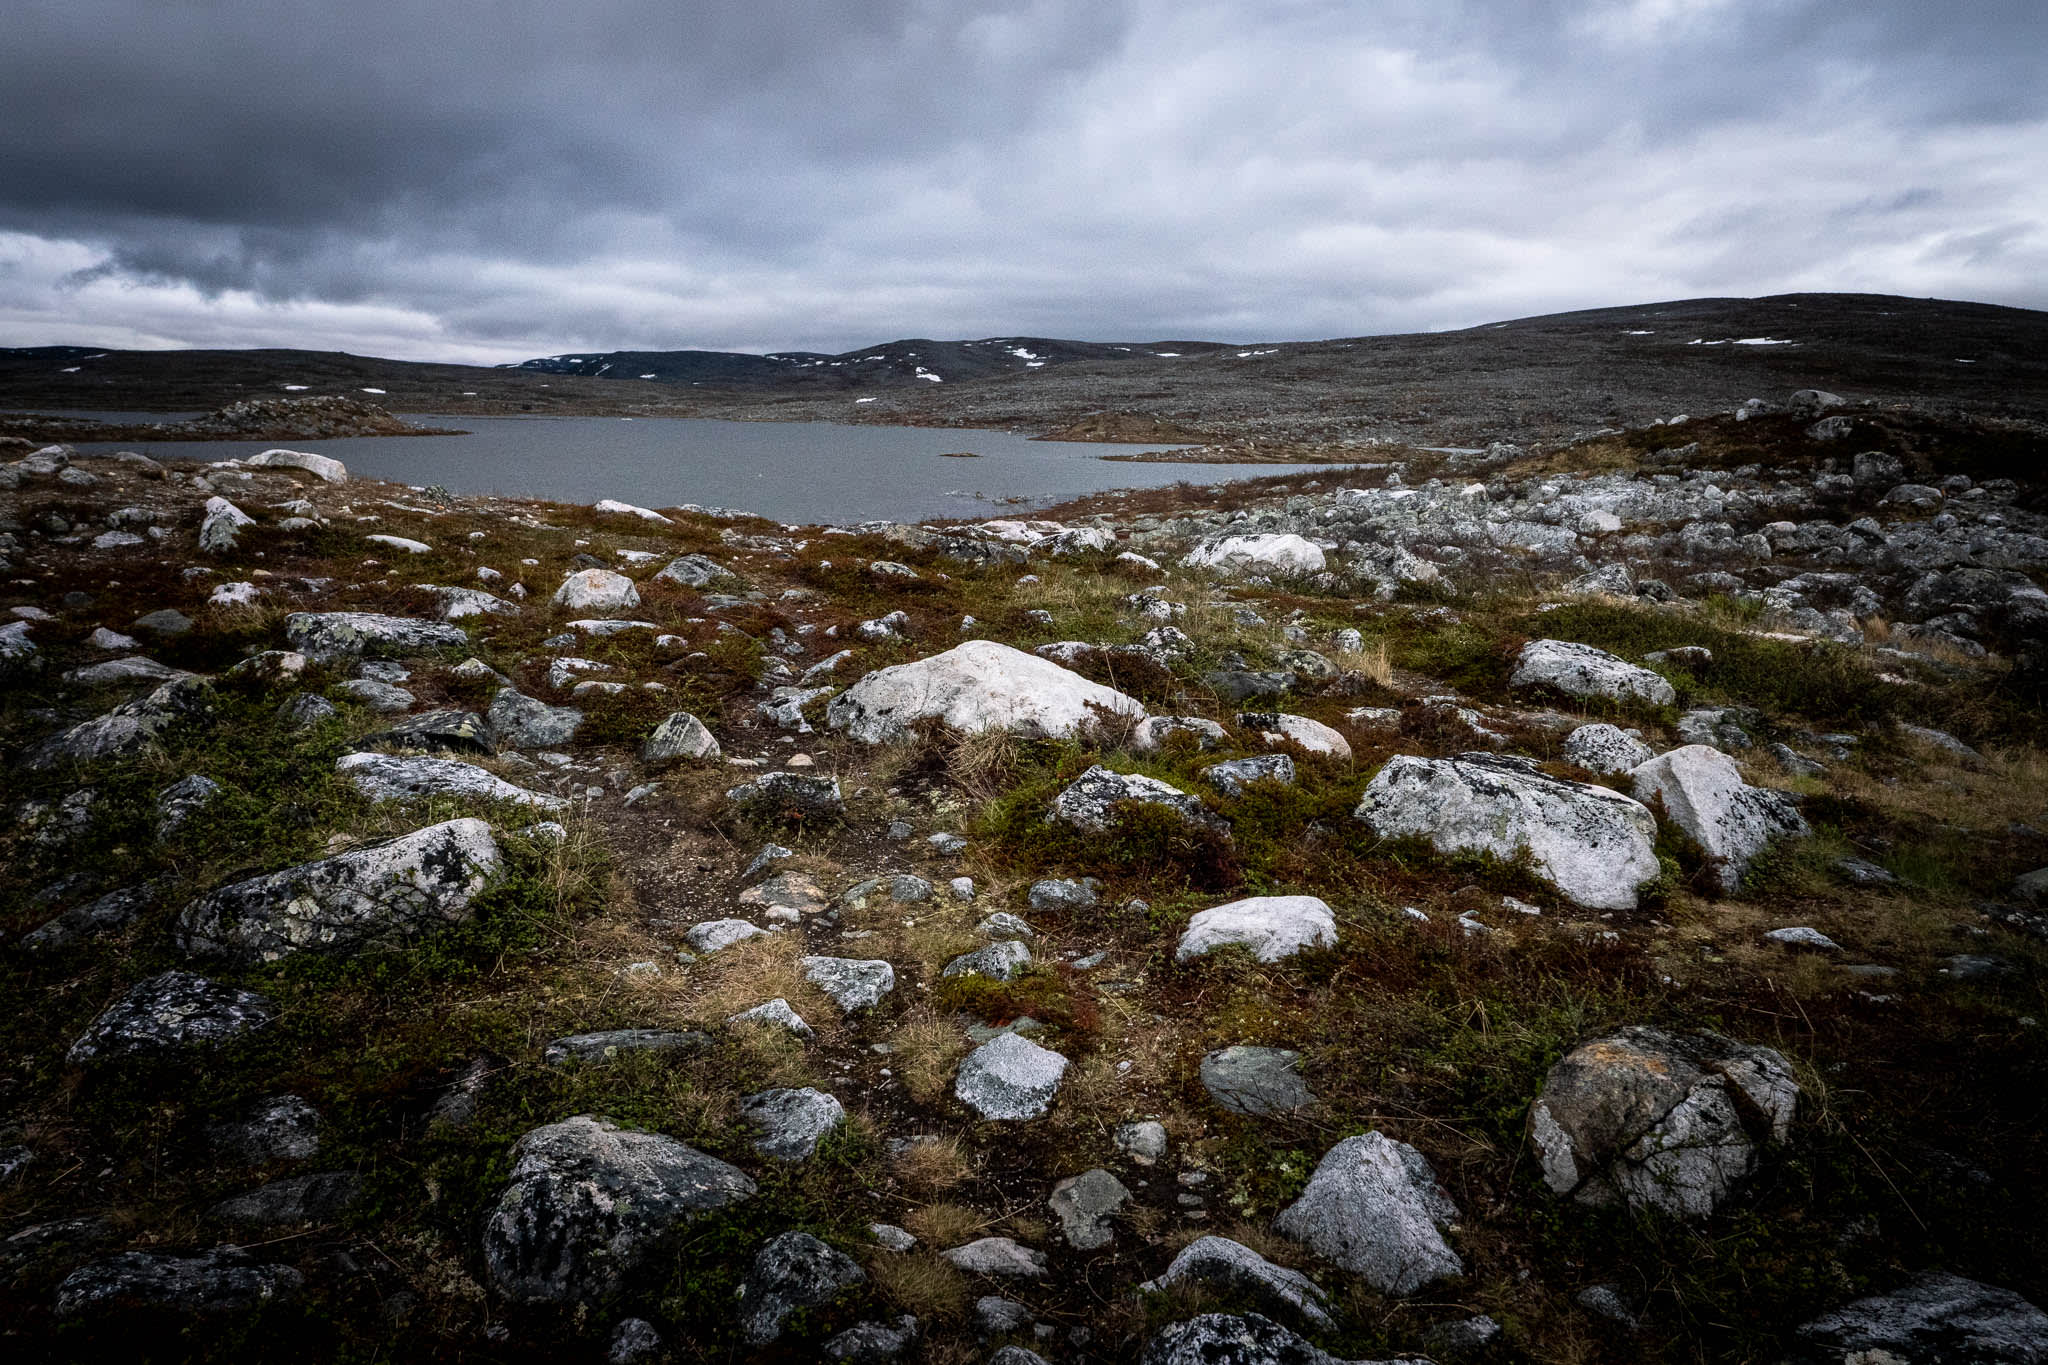 Nordic Nature with Rocks and Lake